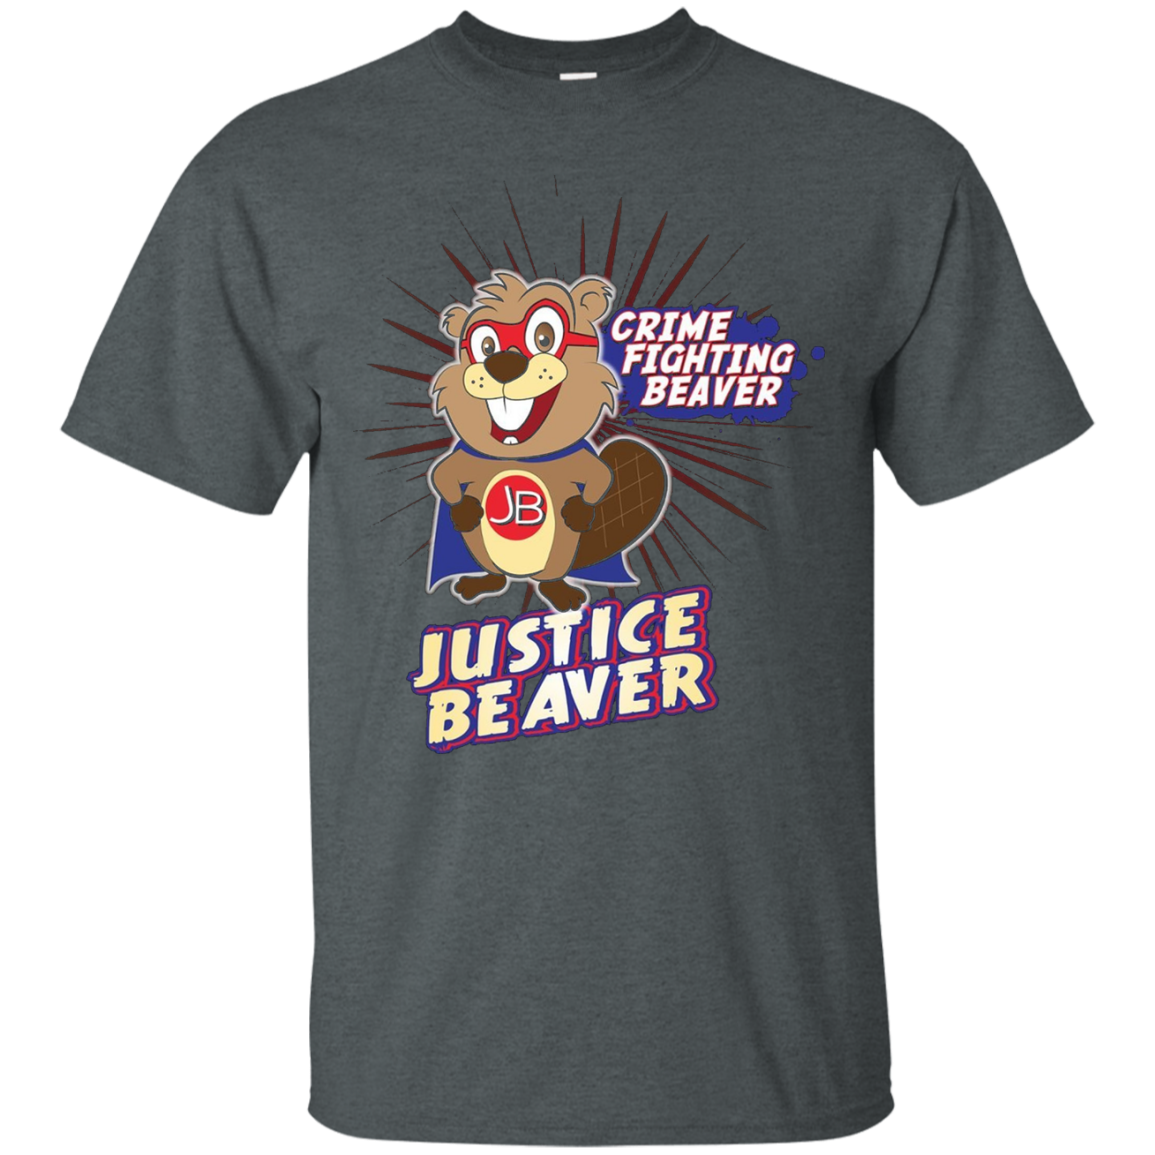 Justice Beaver Funny T-Shirt Crime Fighting Beaver